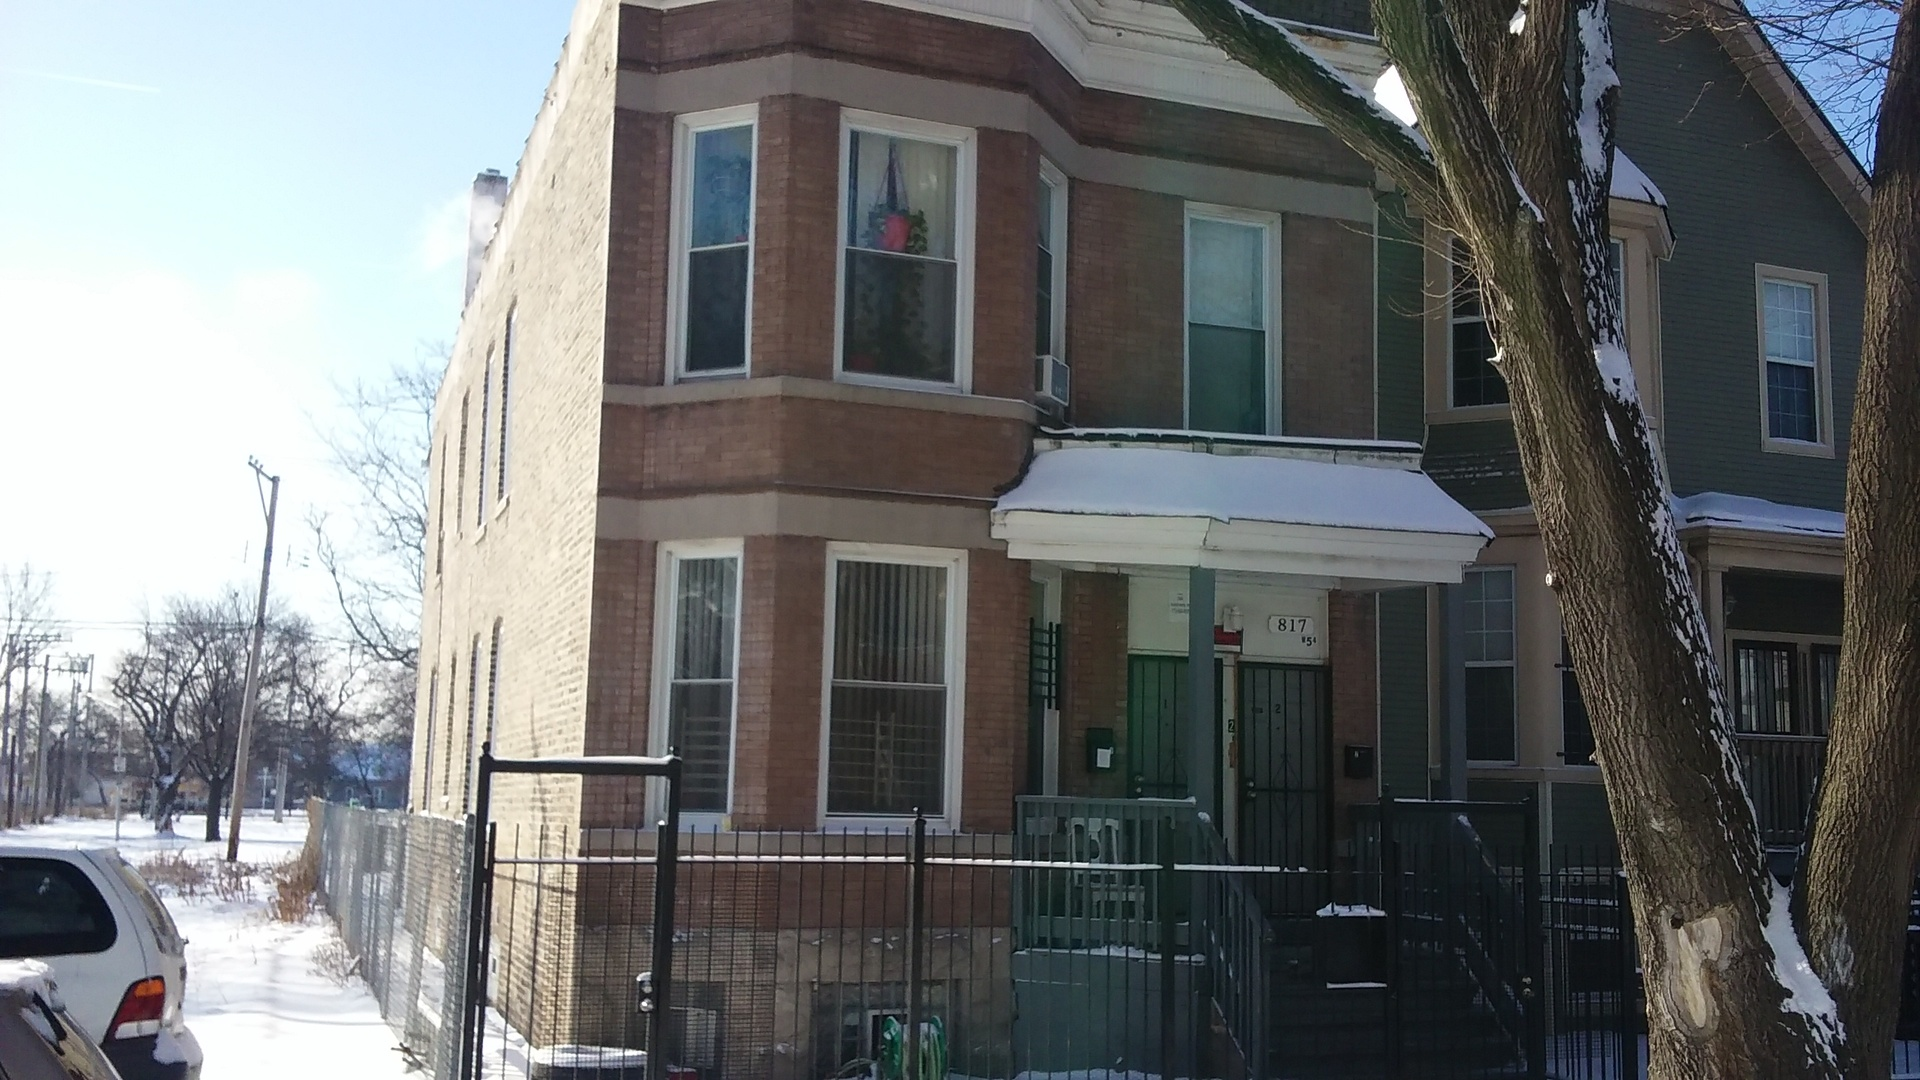 817 54th ,Chicago, Illinois 60609